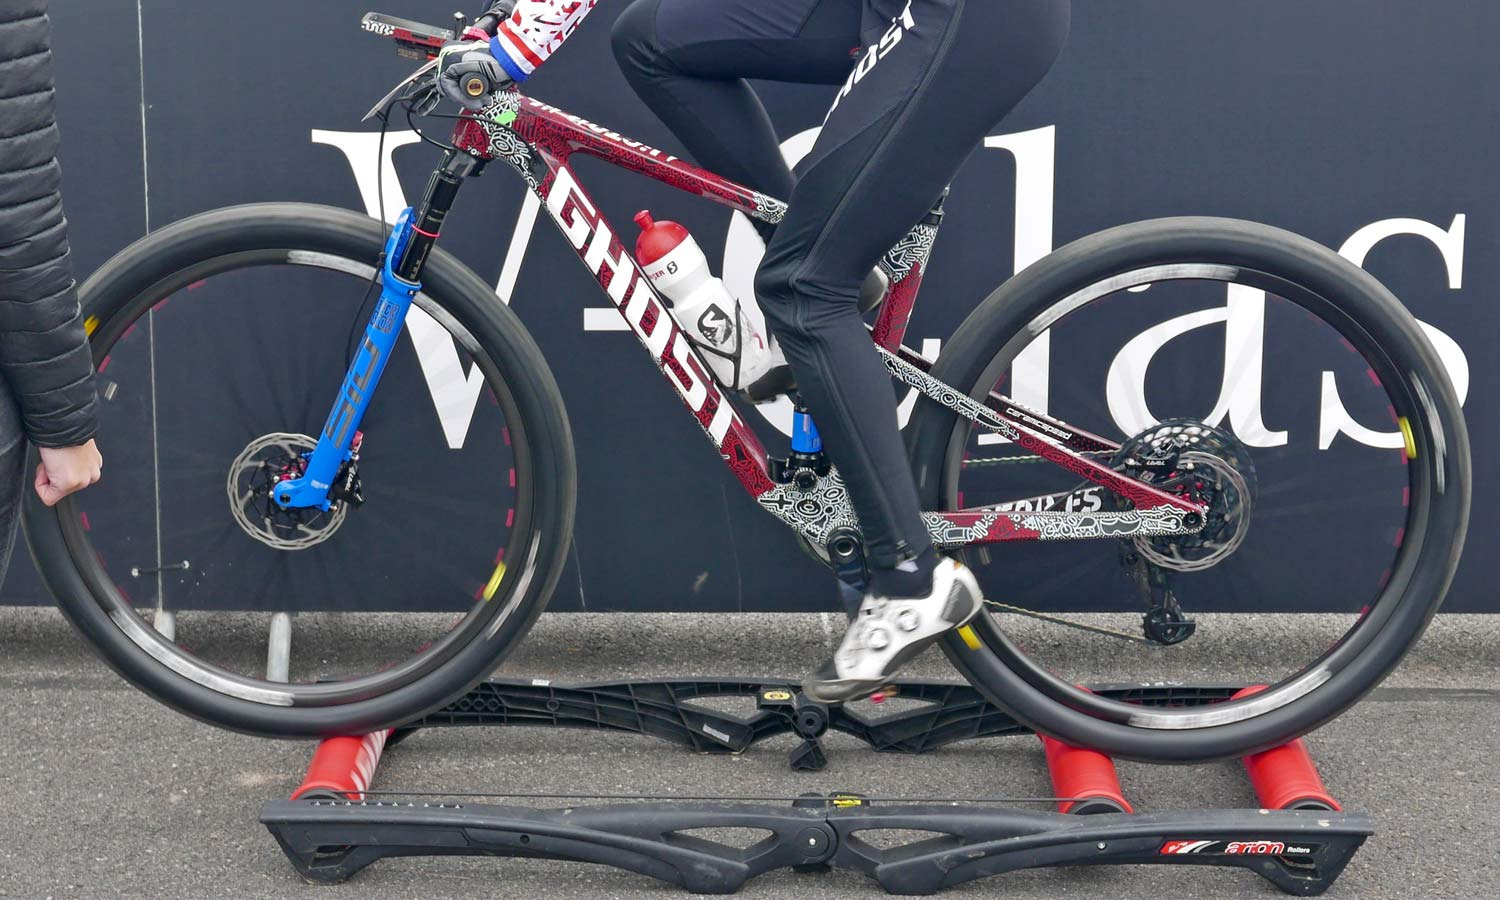 prototype Ghost Lector FS XC bike, full suspension cross-country mountain bike, Nove Mesto World Cup, Anne Terpstrarollers